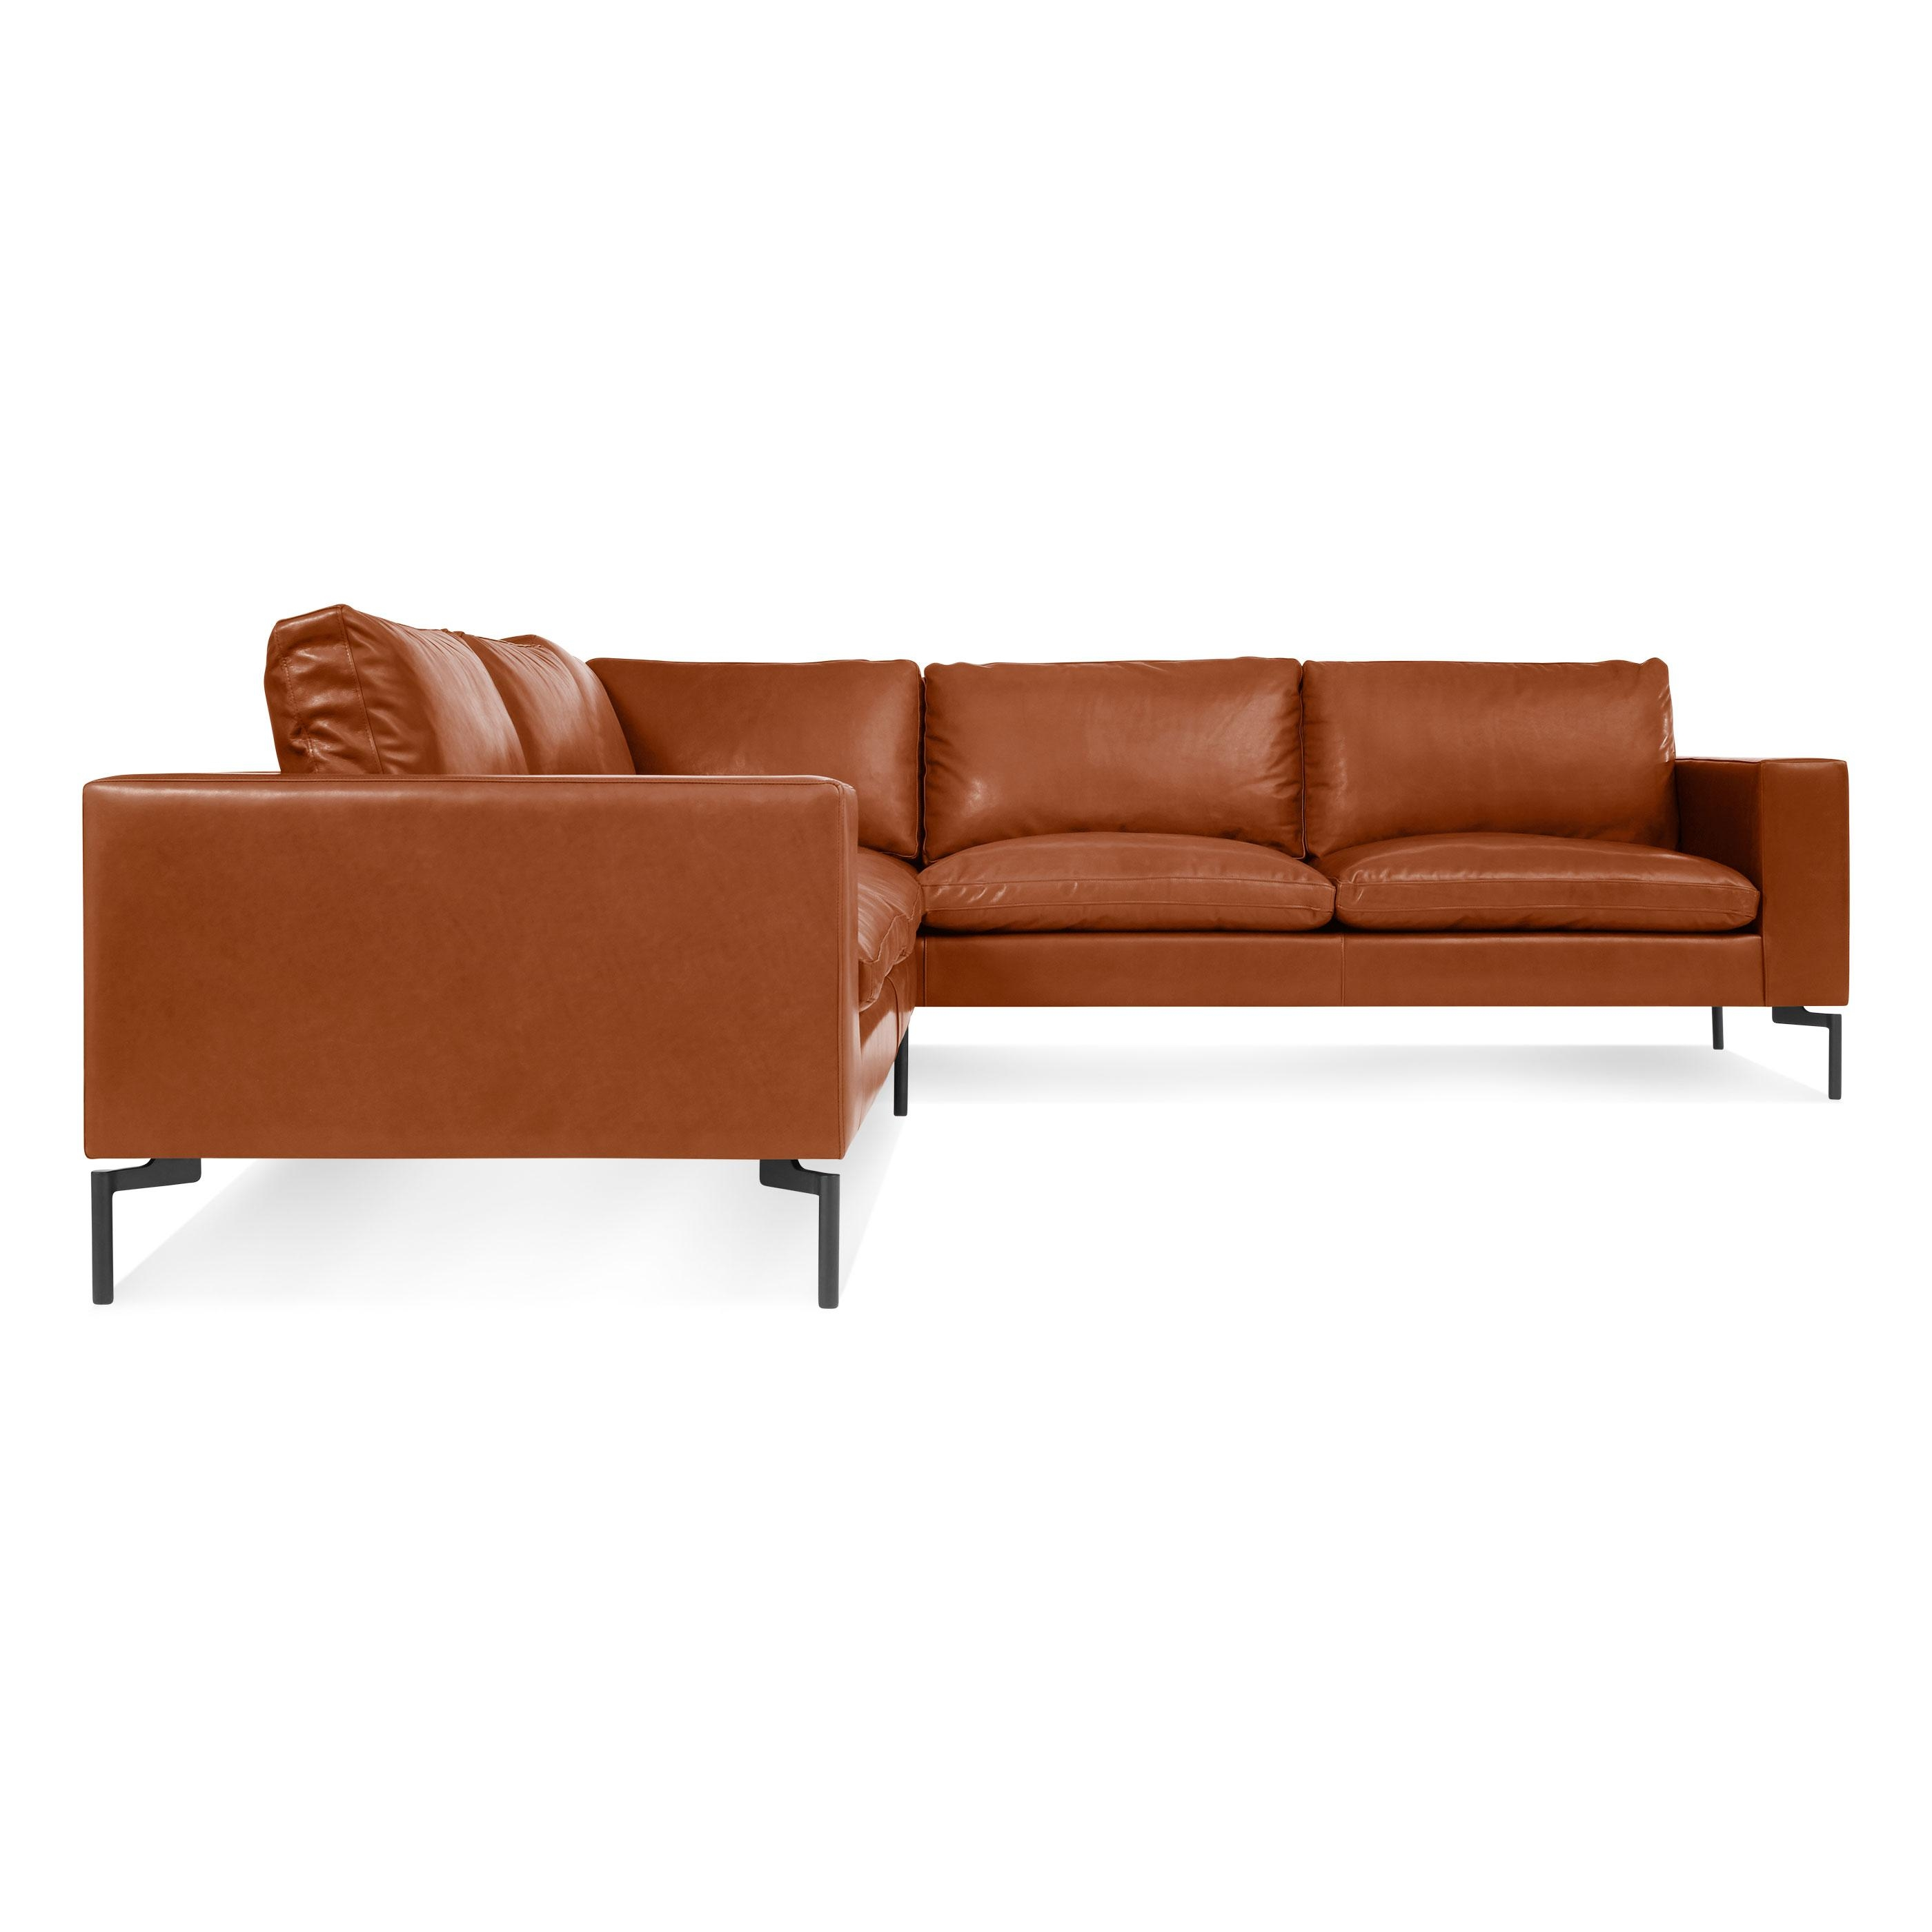 New Standard Small Leather Sectional – Modern Leather Sofa | Blu Dot pertaining to Modern Small Sectional Sofas